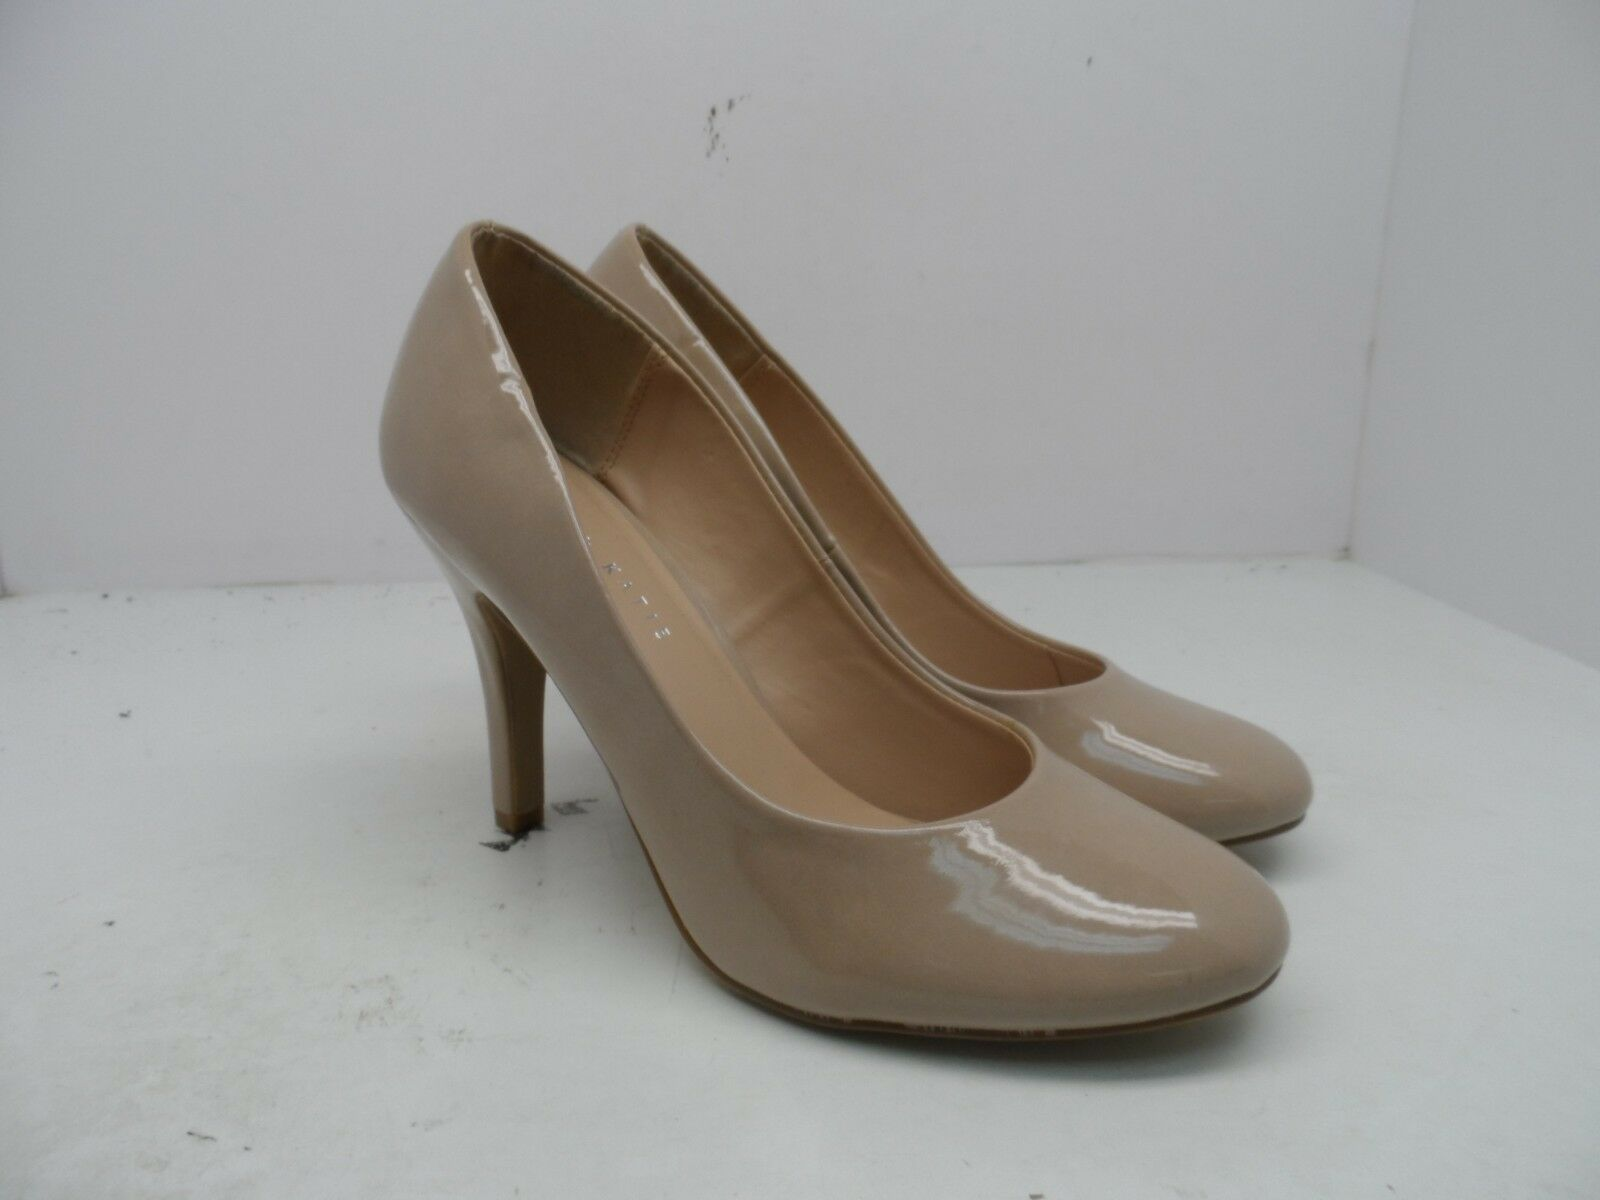 Kelly & Katie Women's Coderno Pump Taupe Size 8.5M